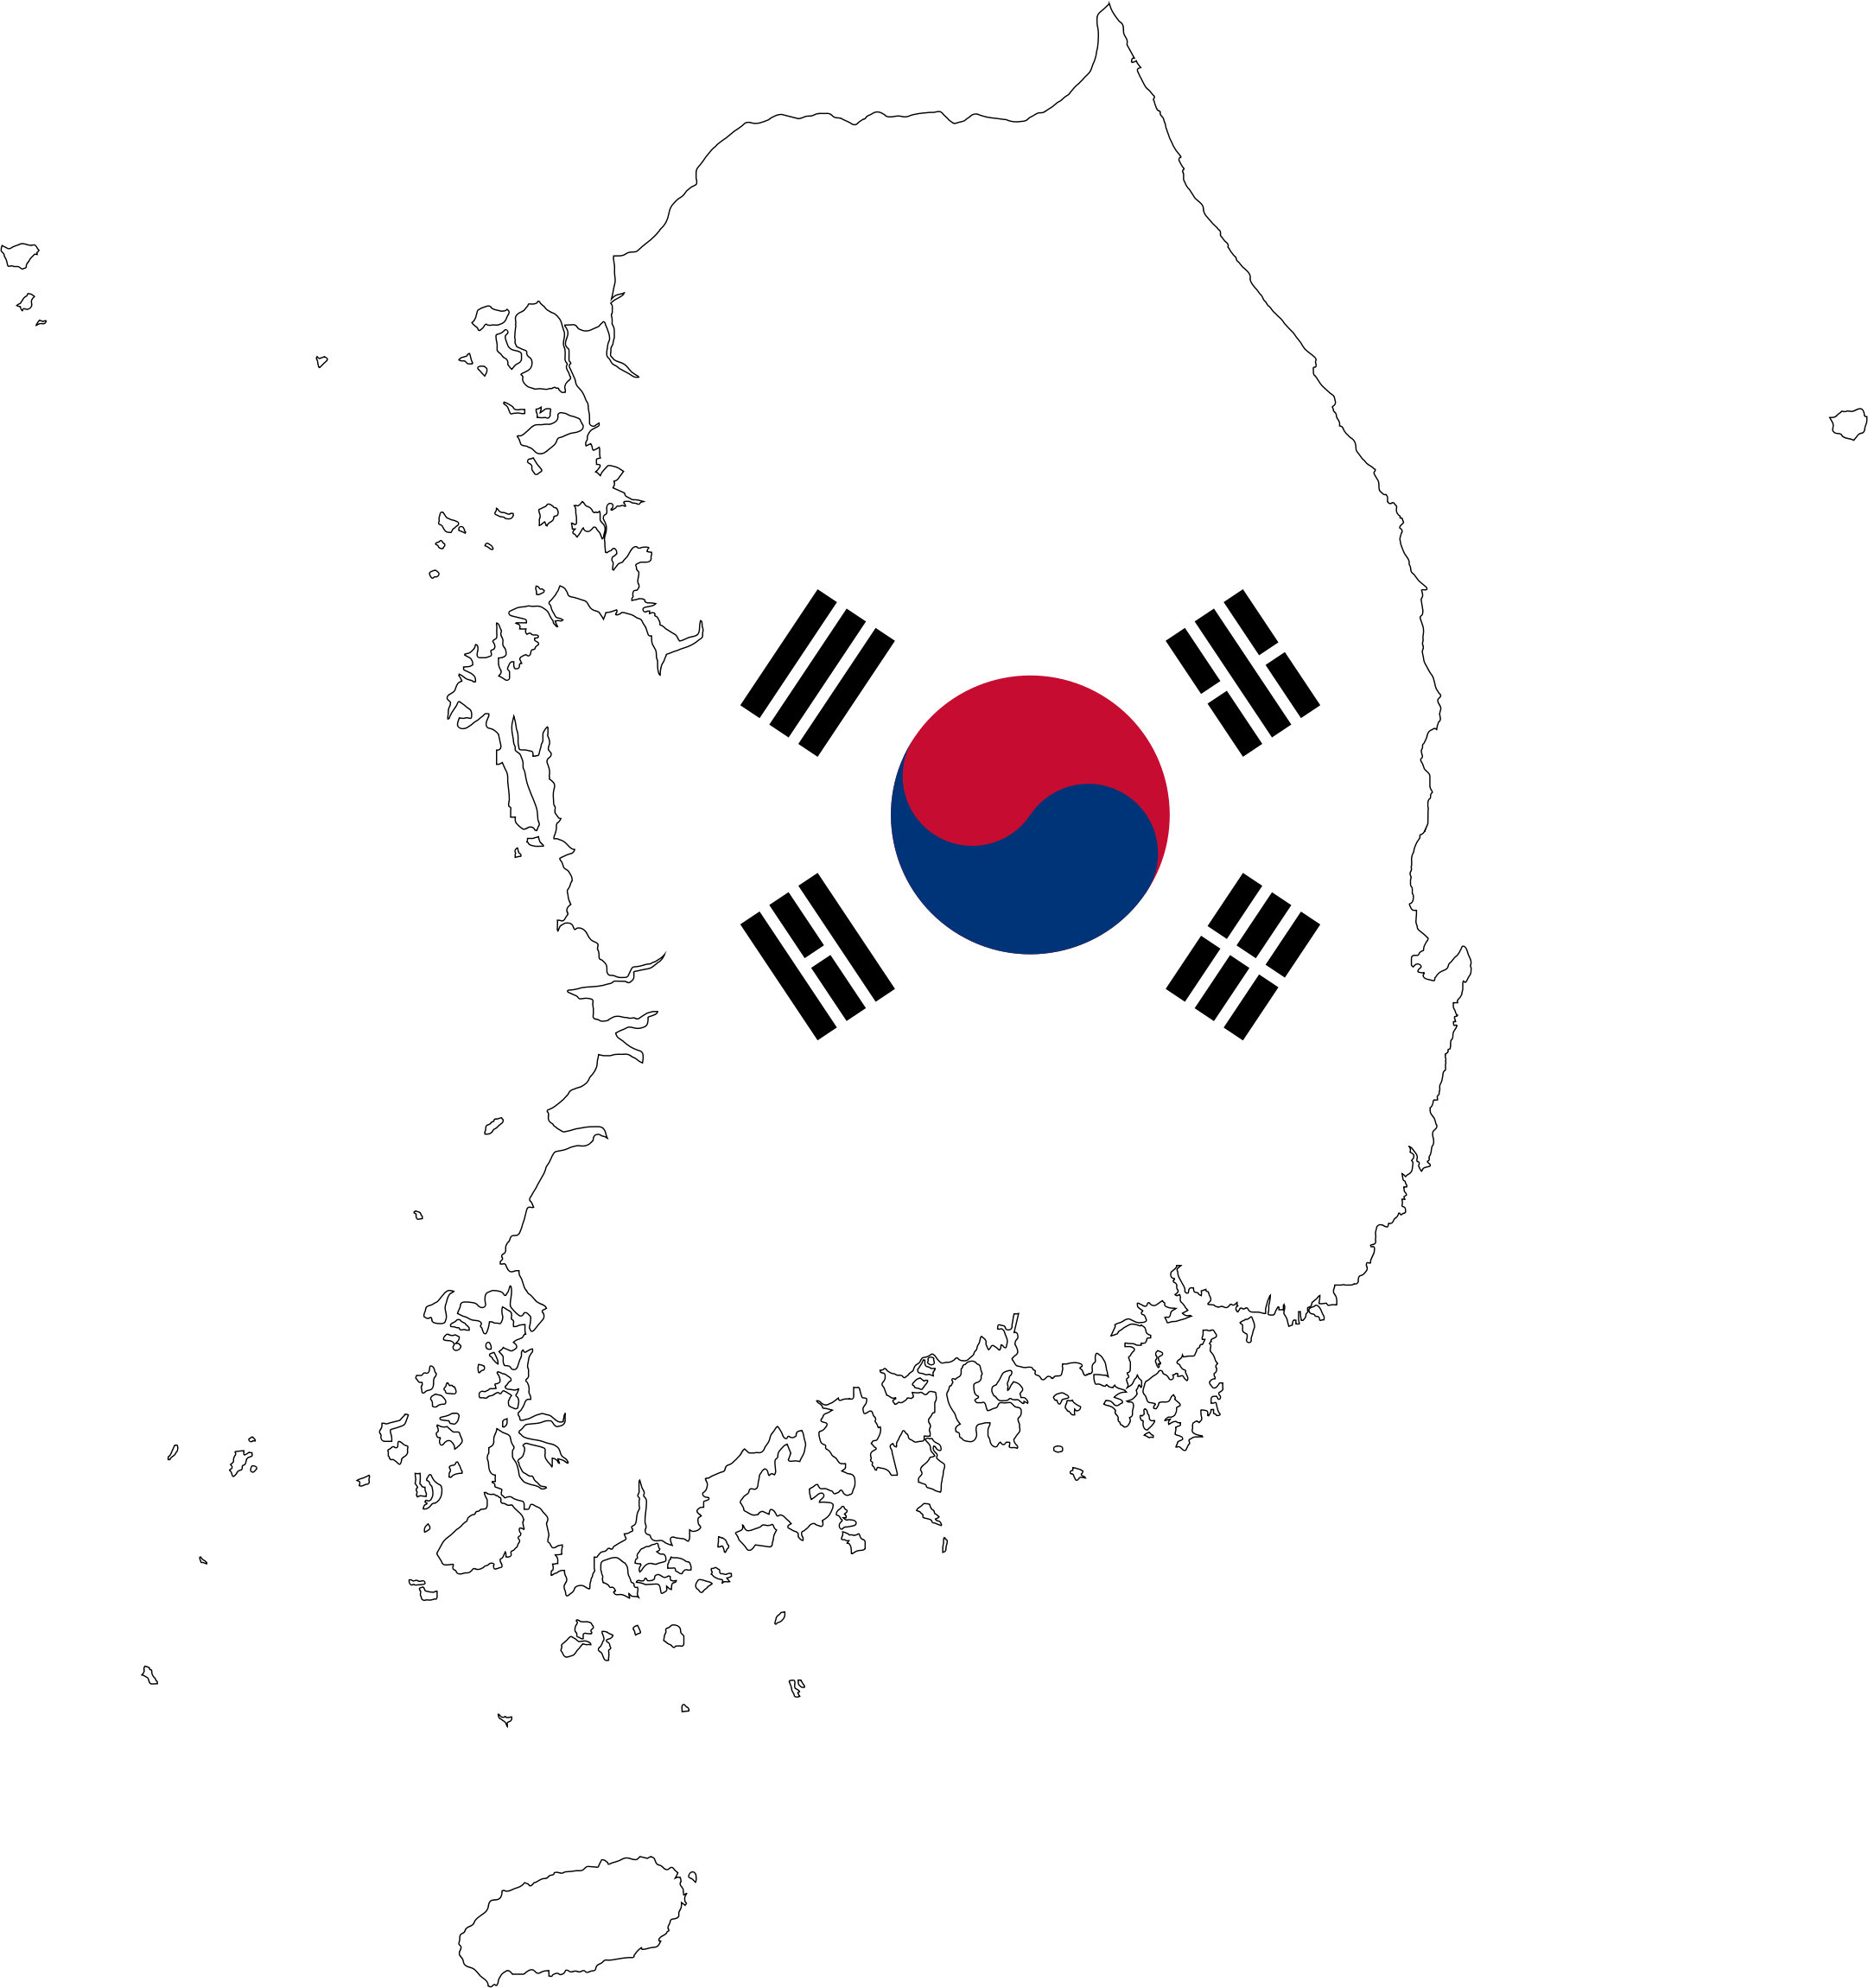 South Korea Map Flag With Stroke by GDJ